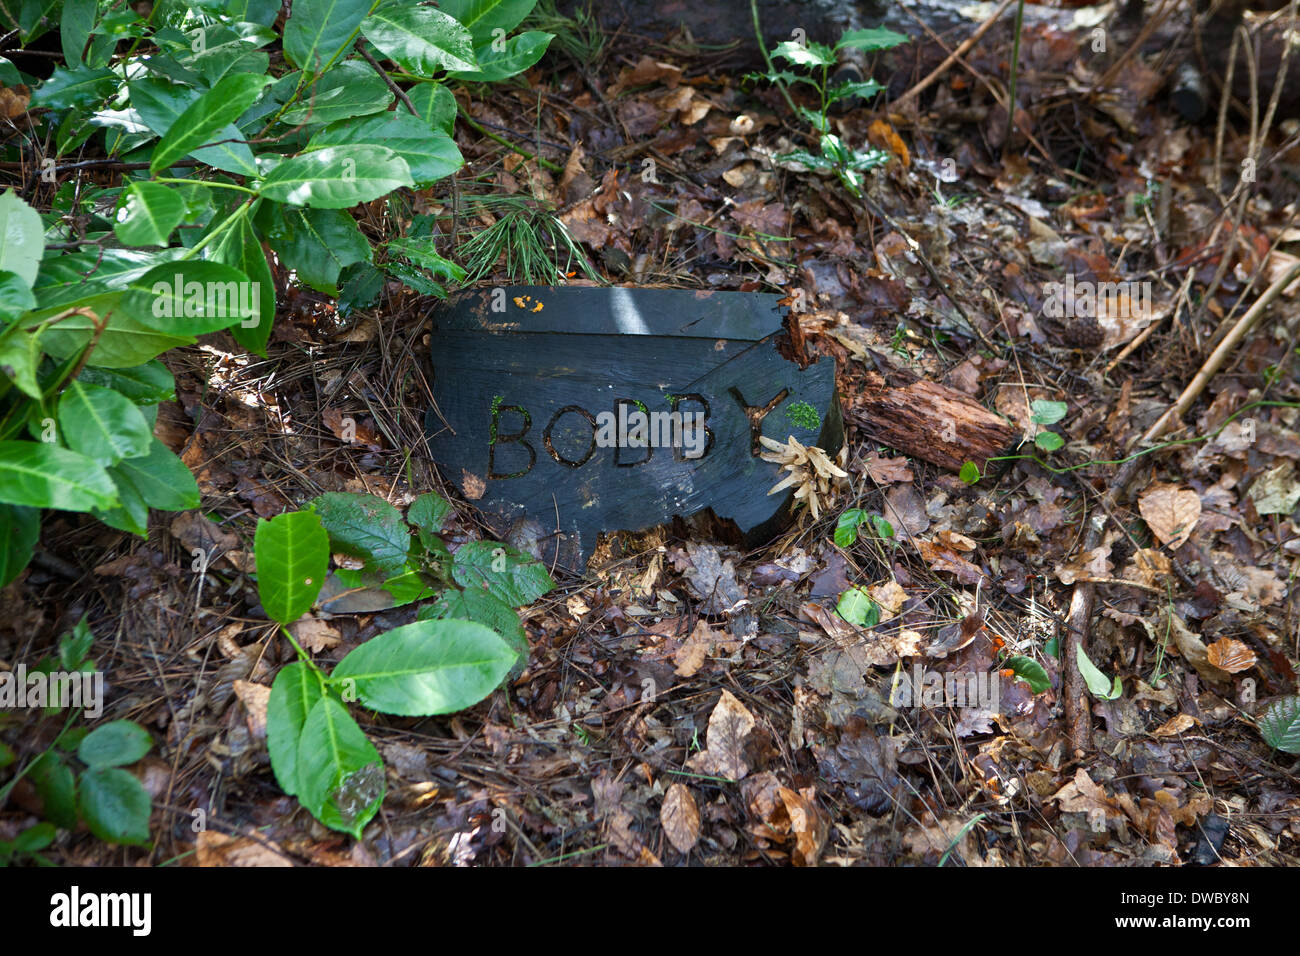 A pet cemetery in a wood, with a tree trunk tomb stone with pets' name inscribed. Stock Photo